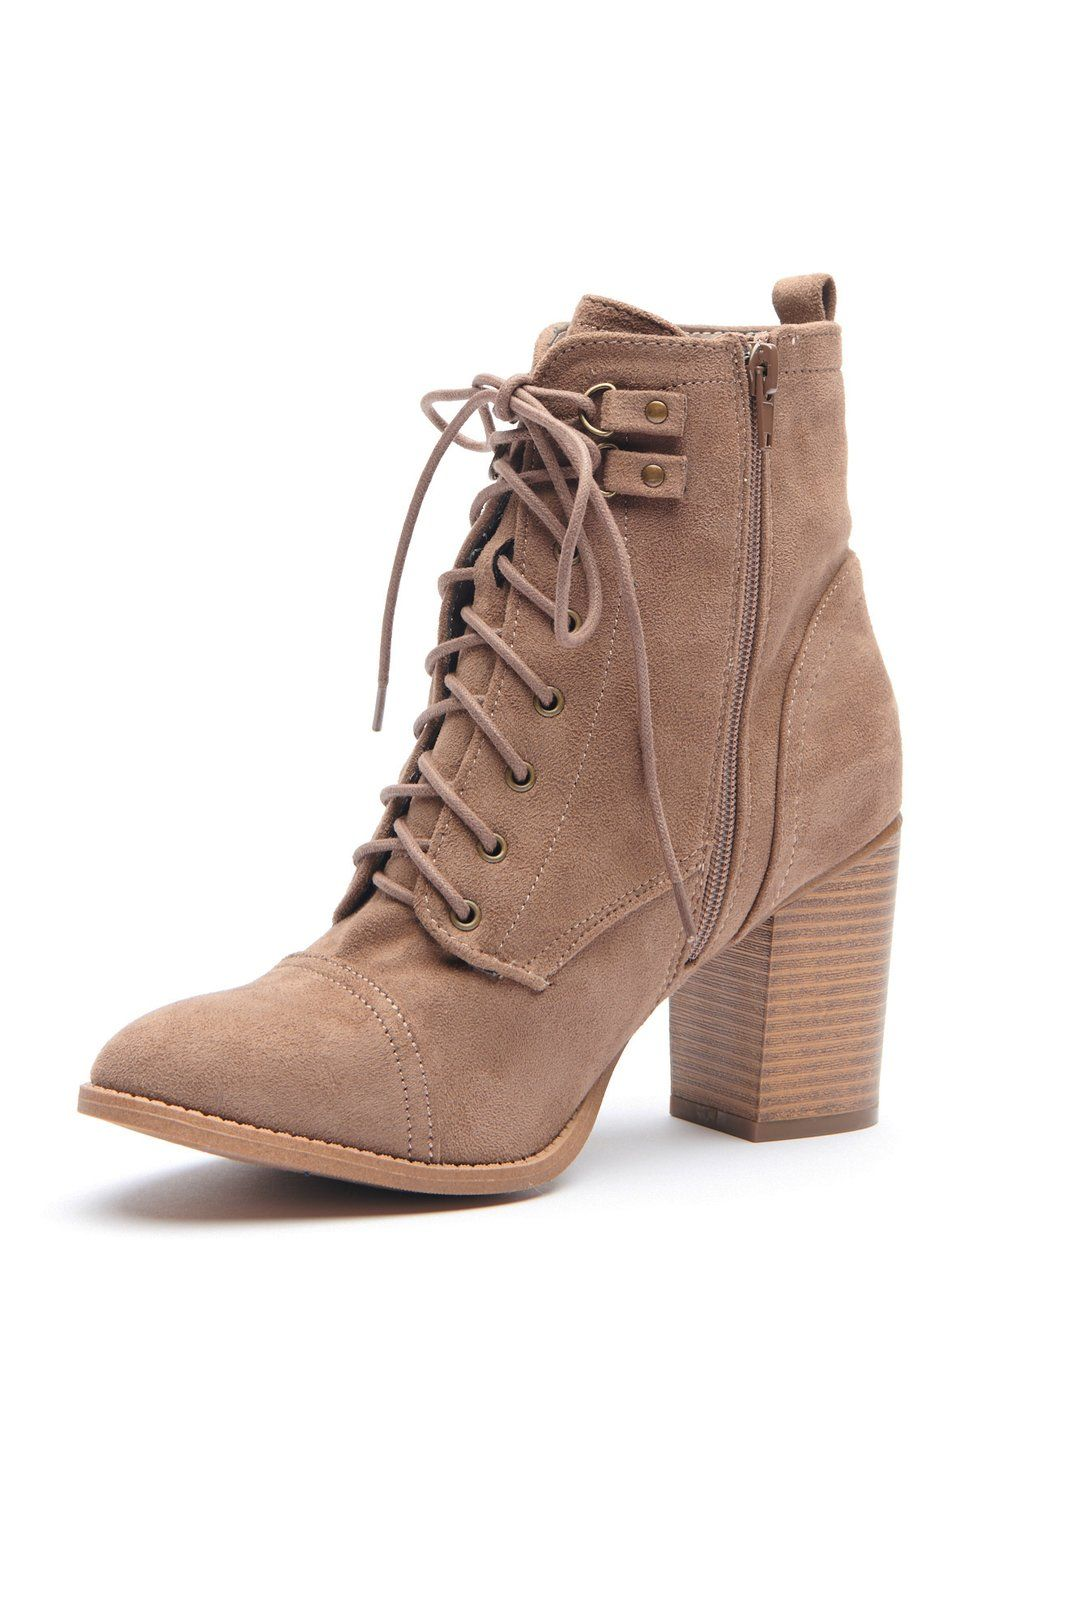 f5734d2f92a The Next Step Lace Up Booties (Taupe)